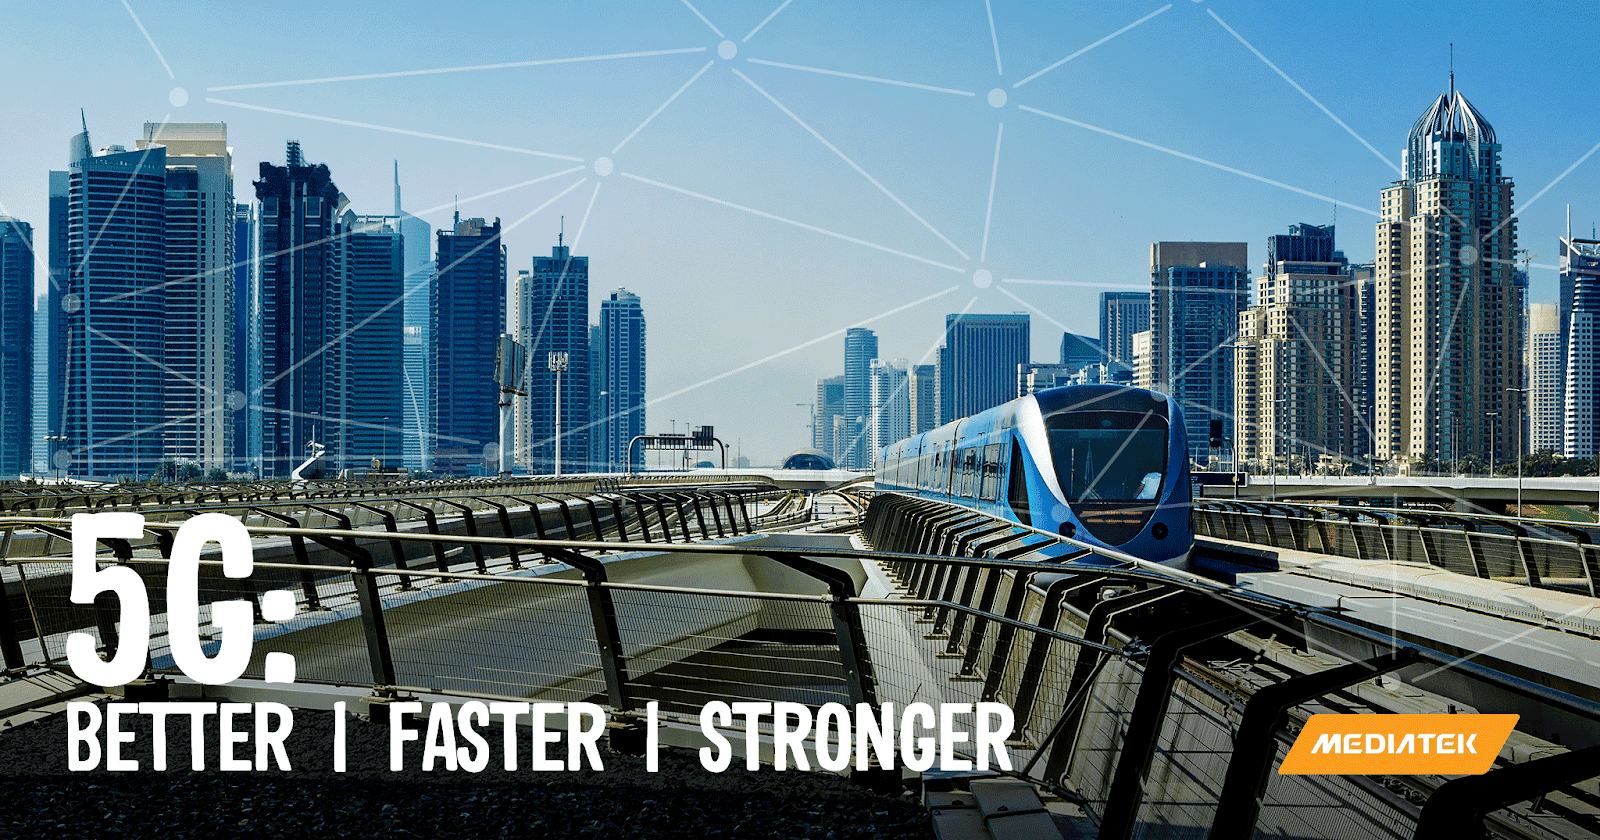 Video: A glimpse of Shanghai's first 5G experience center